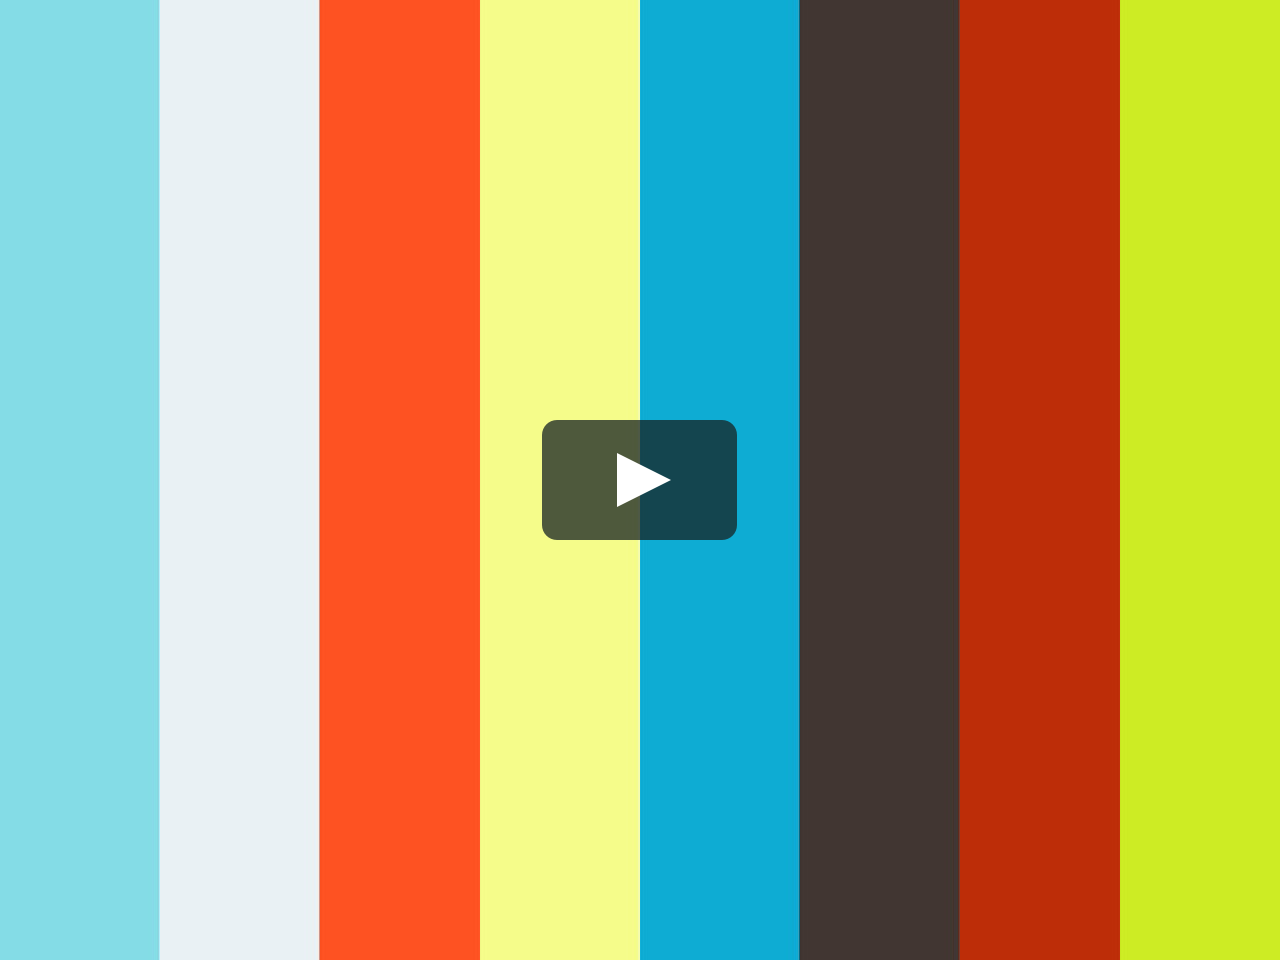 Parking Through Meet And Greet Companies In The Uk On Vimeo